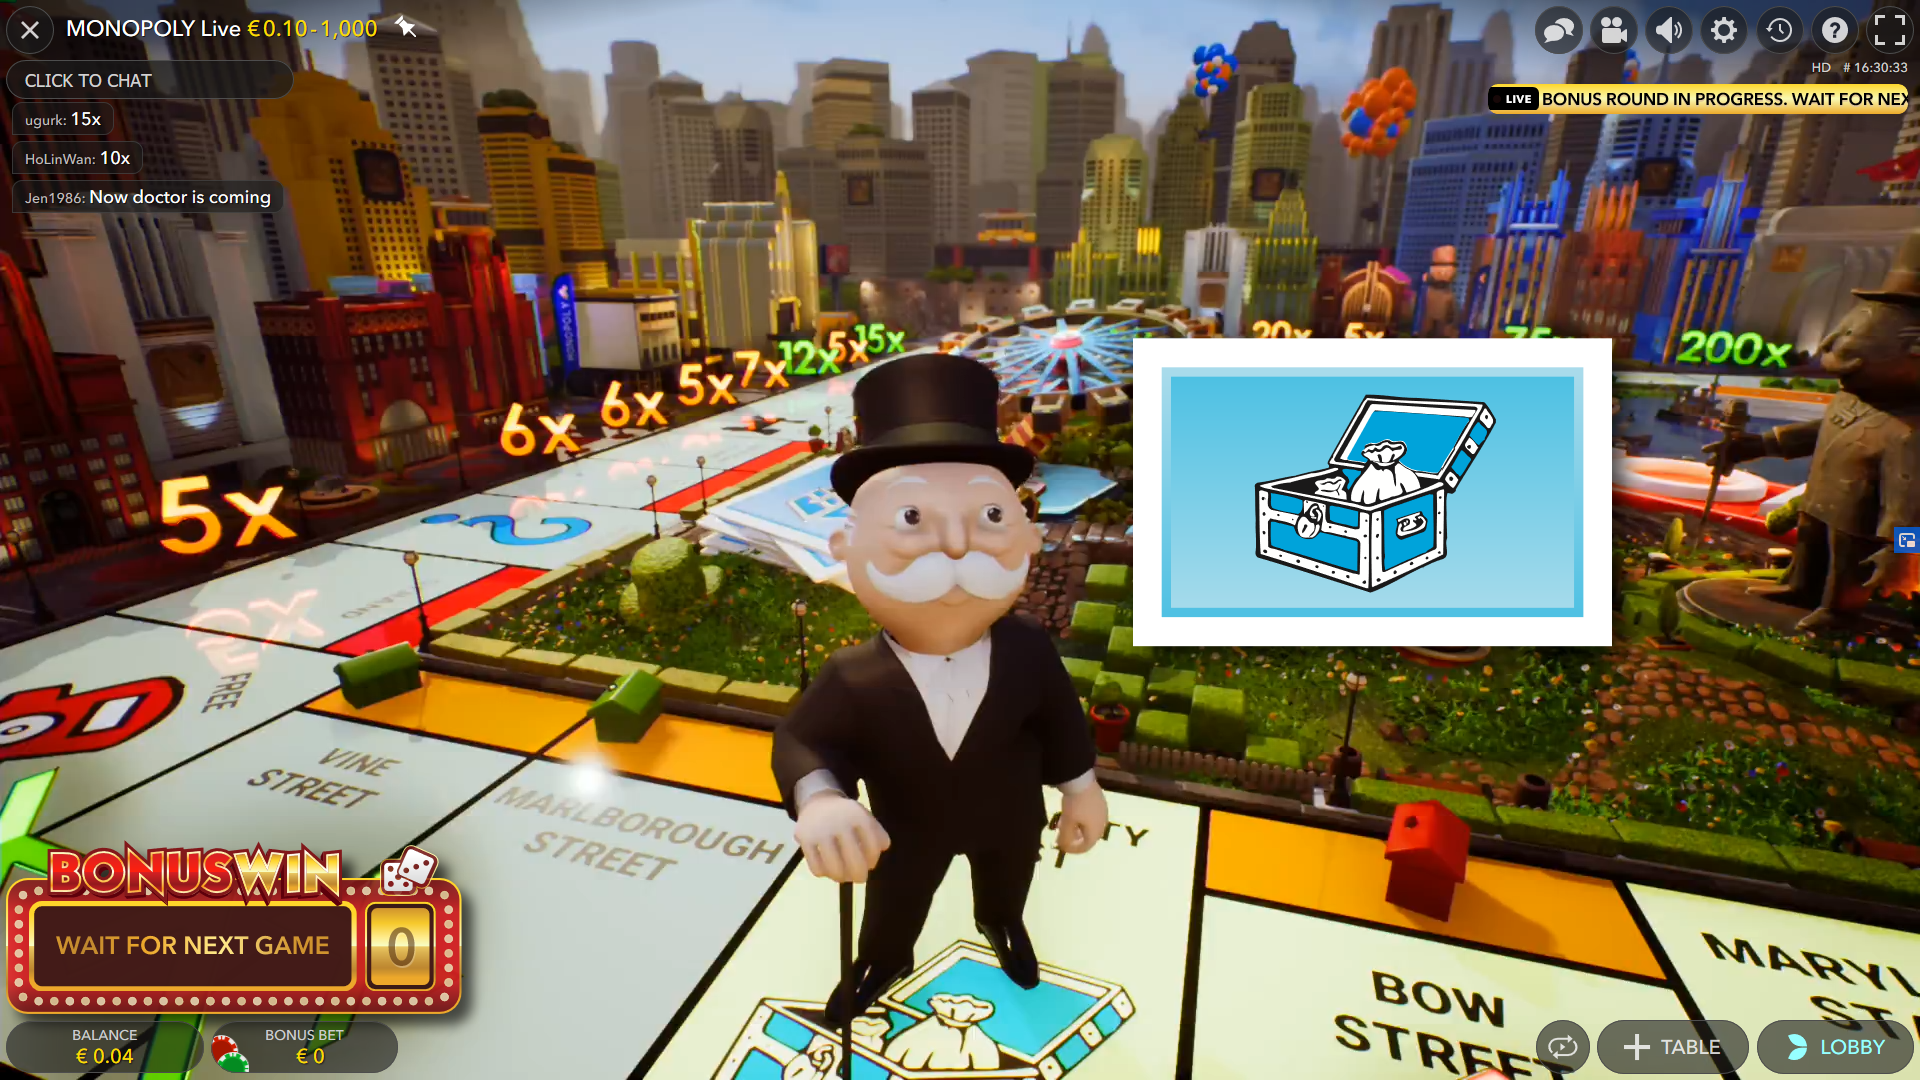 monopoly live bonus game - community chest